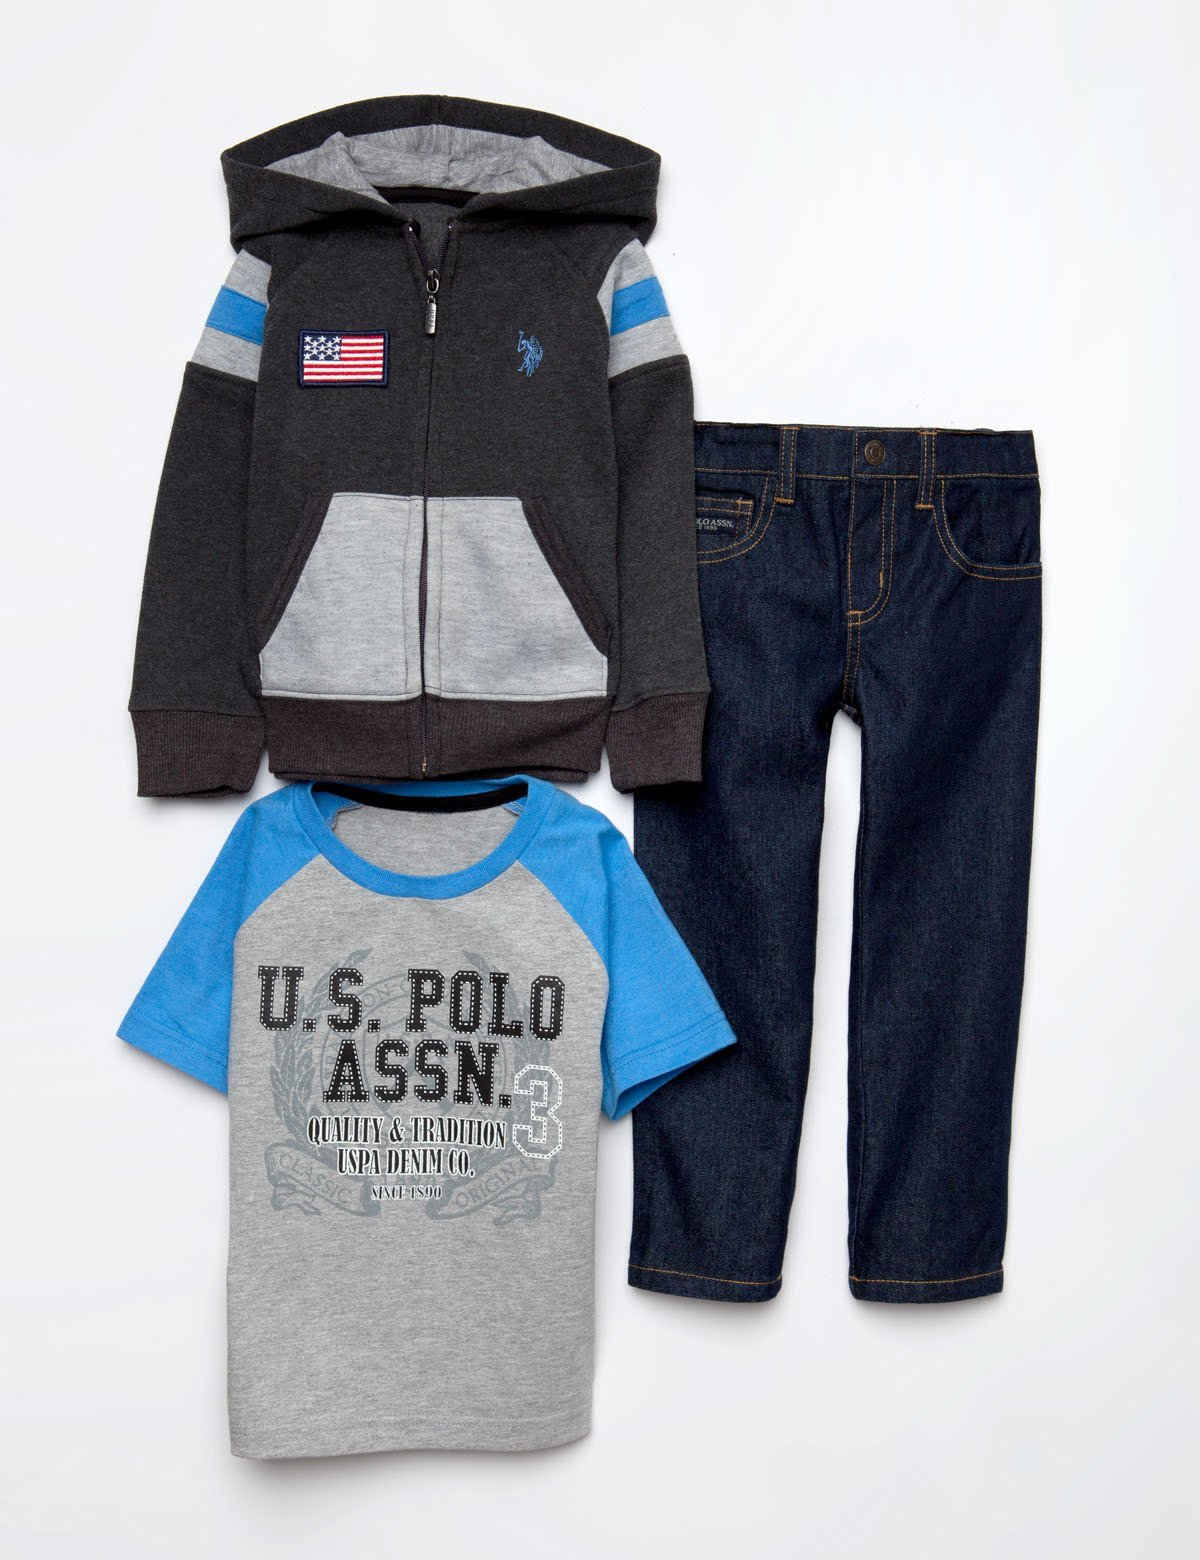 TODDLER BOYS 3 PIECE SET - FLEECE, TEE & JEANS - U.S. Polo Assn.